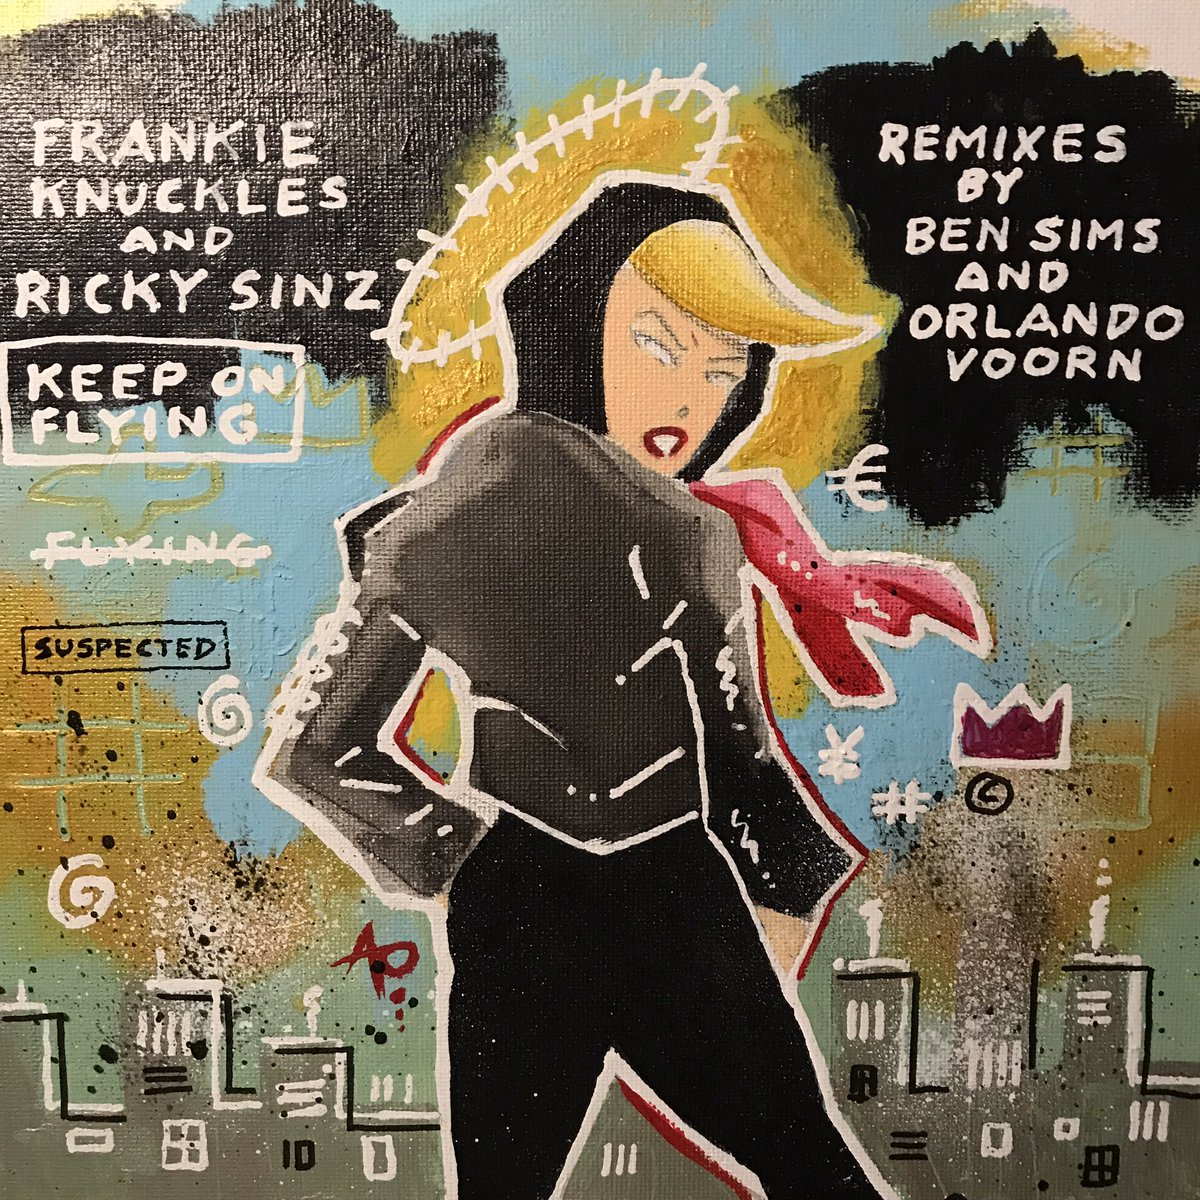 """First piece of art of 2021; album cover for @suspectedmusic. #FrankieKnuckles & #RickySinz """"Keep On Flying"""" w/ remixes by @djbensims & @orlandovoorn. Acrylic on canvas. Happy Birthday Frankie! #art #painting #design #albumcover #vinyl #alanoldhamart #polymath"""